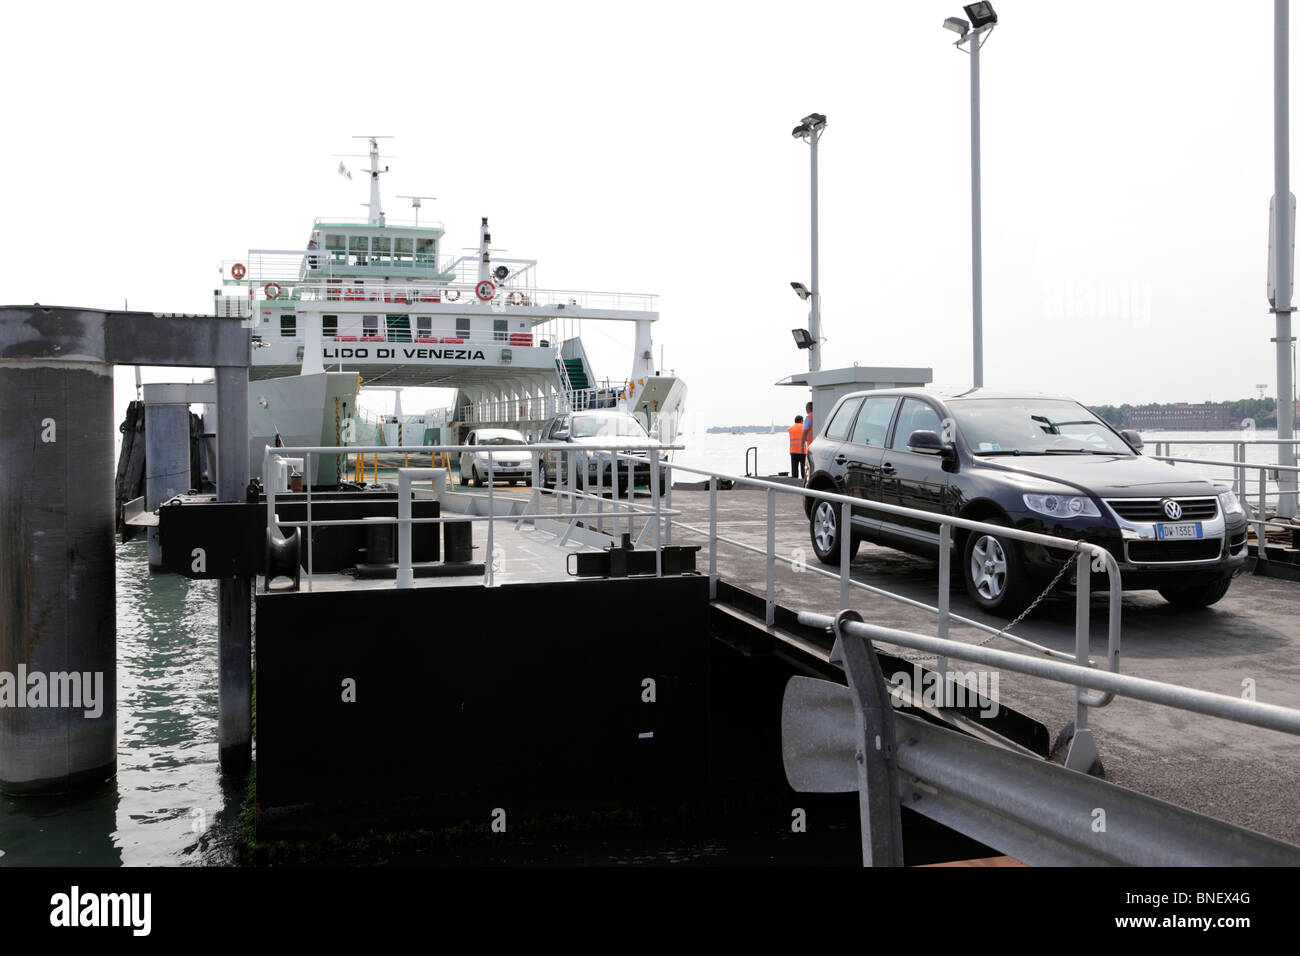 Car ferry Lido Island Venice Italy Stock Photo: 30445984 - Alamy